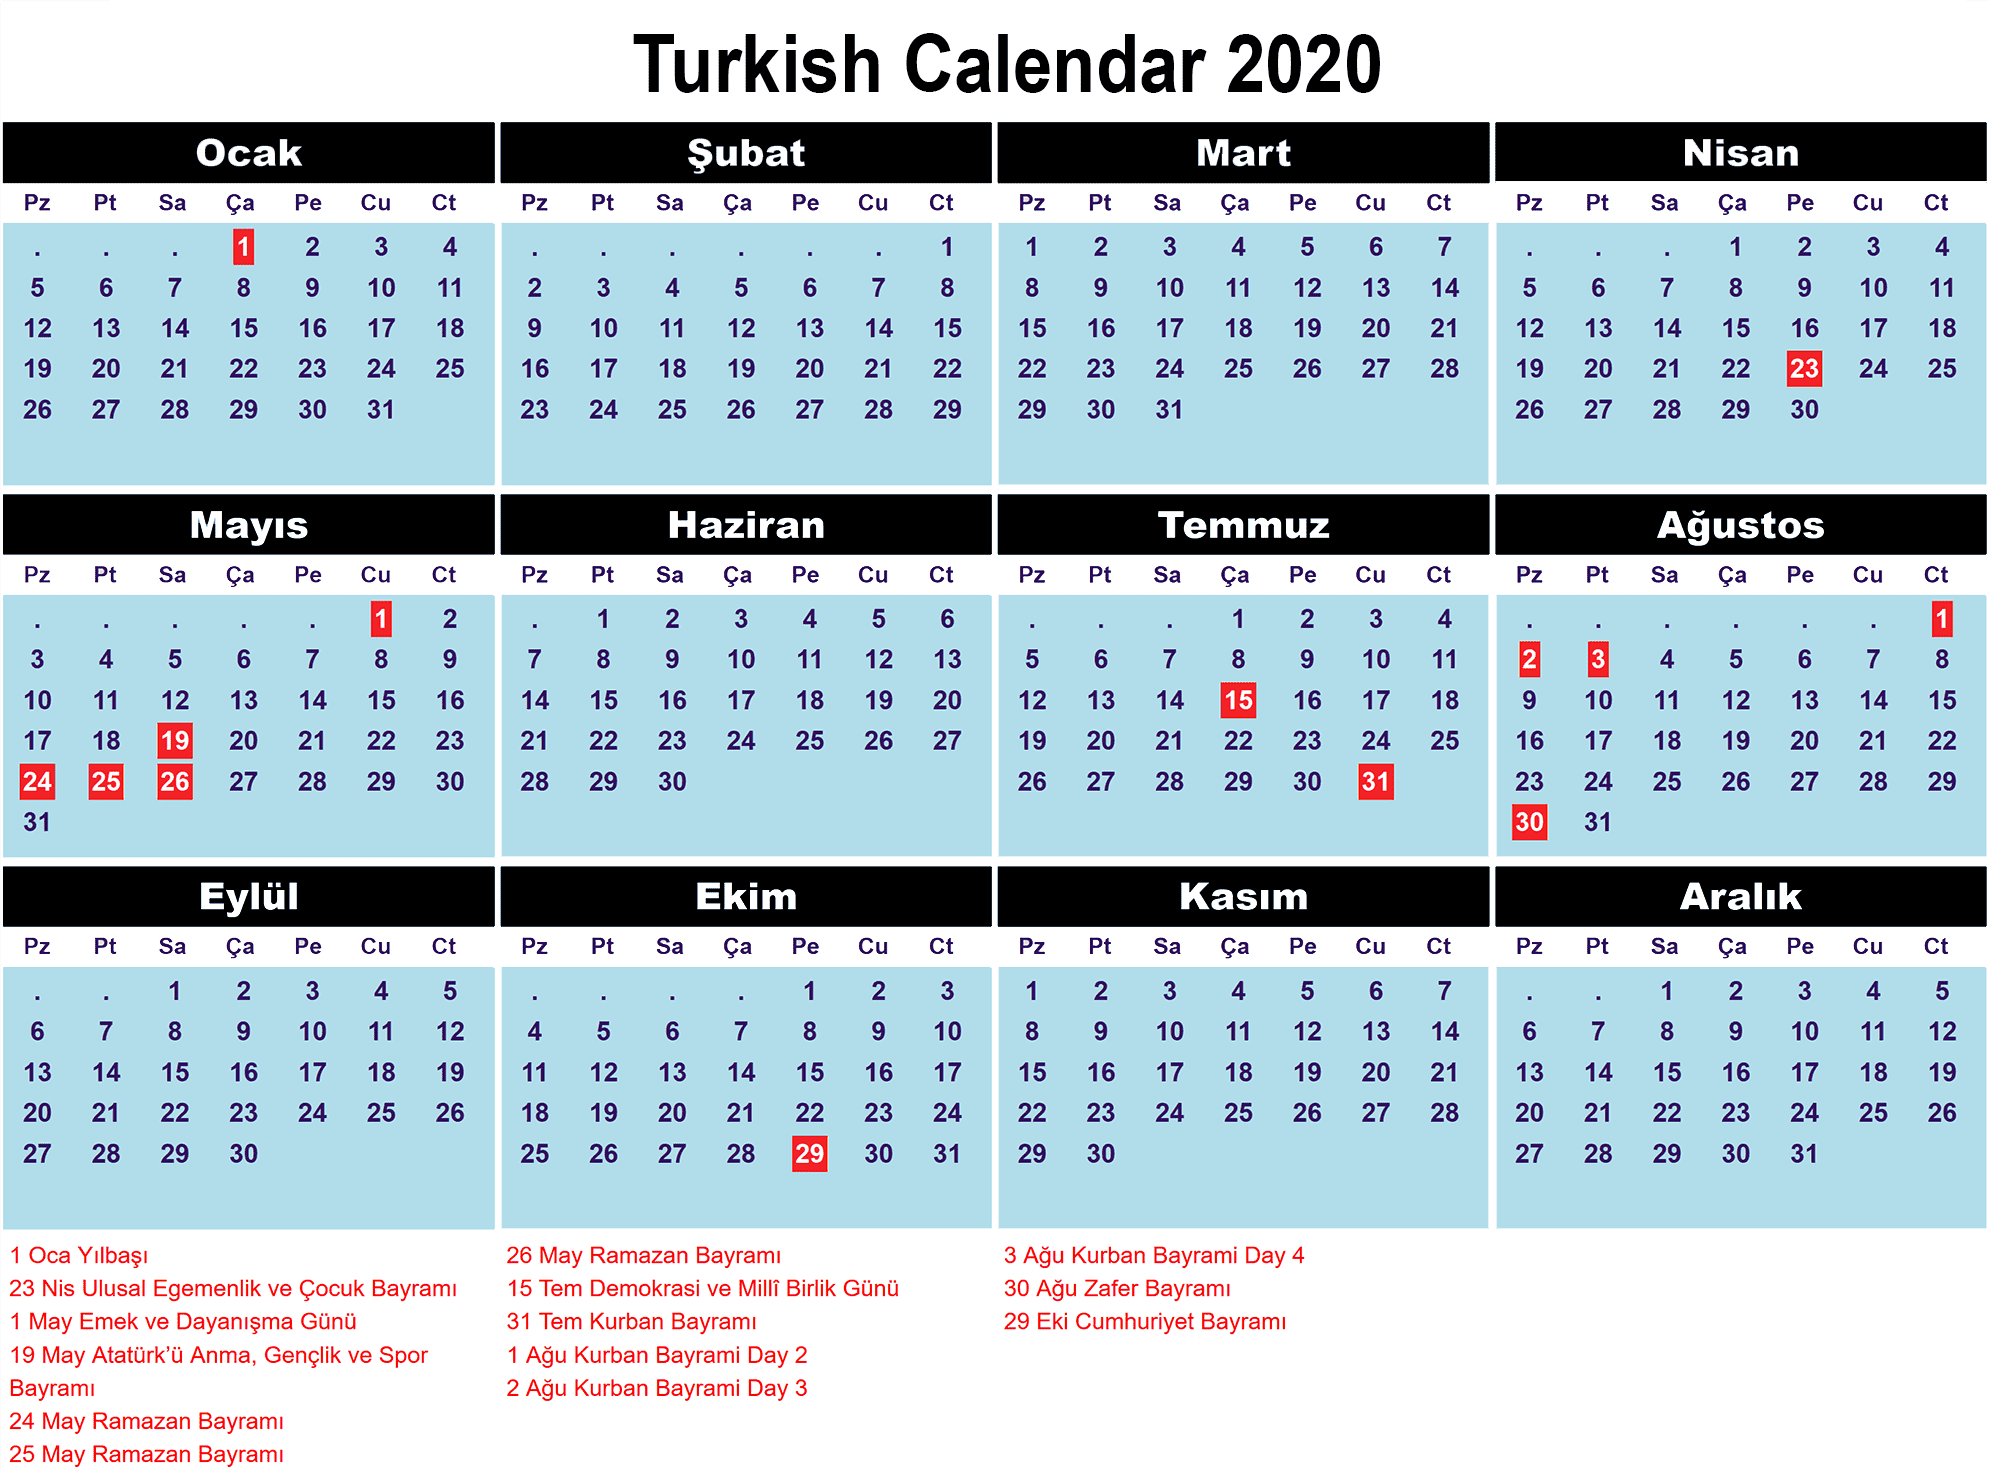 Printable Calendar 2020 with Turkish Holidays